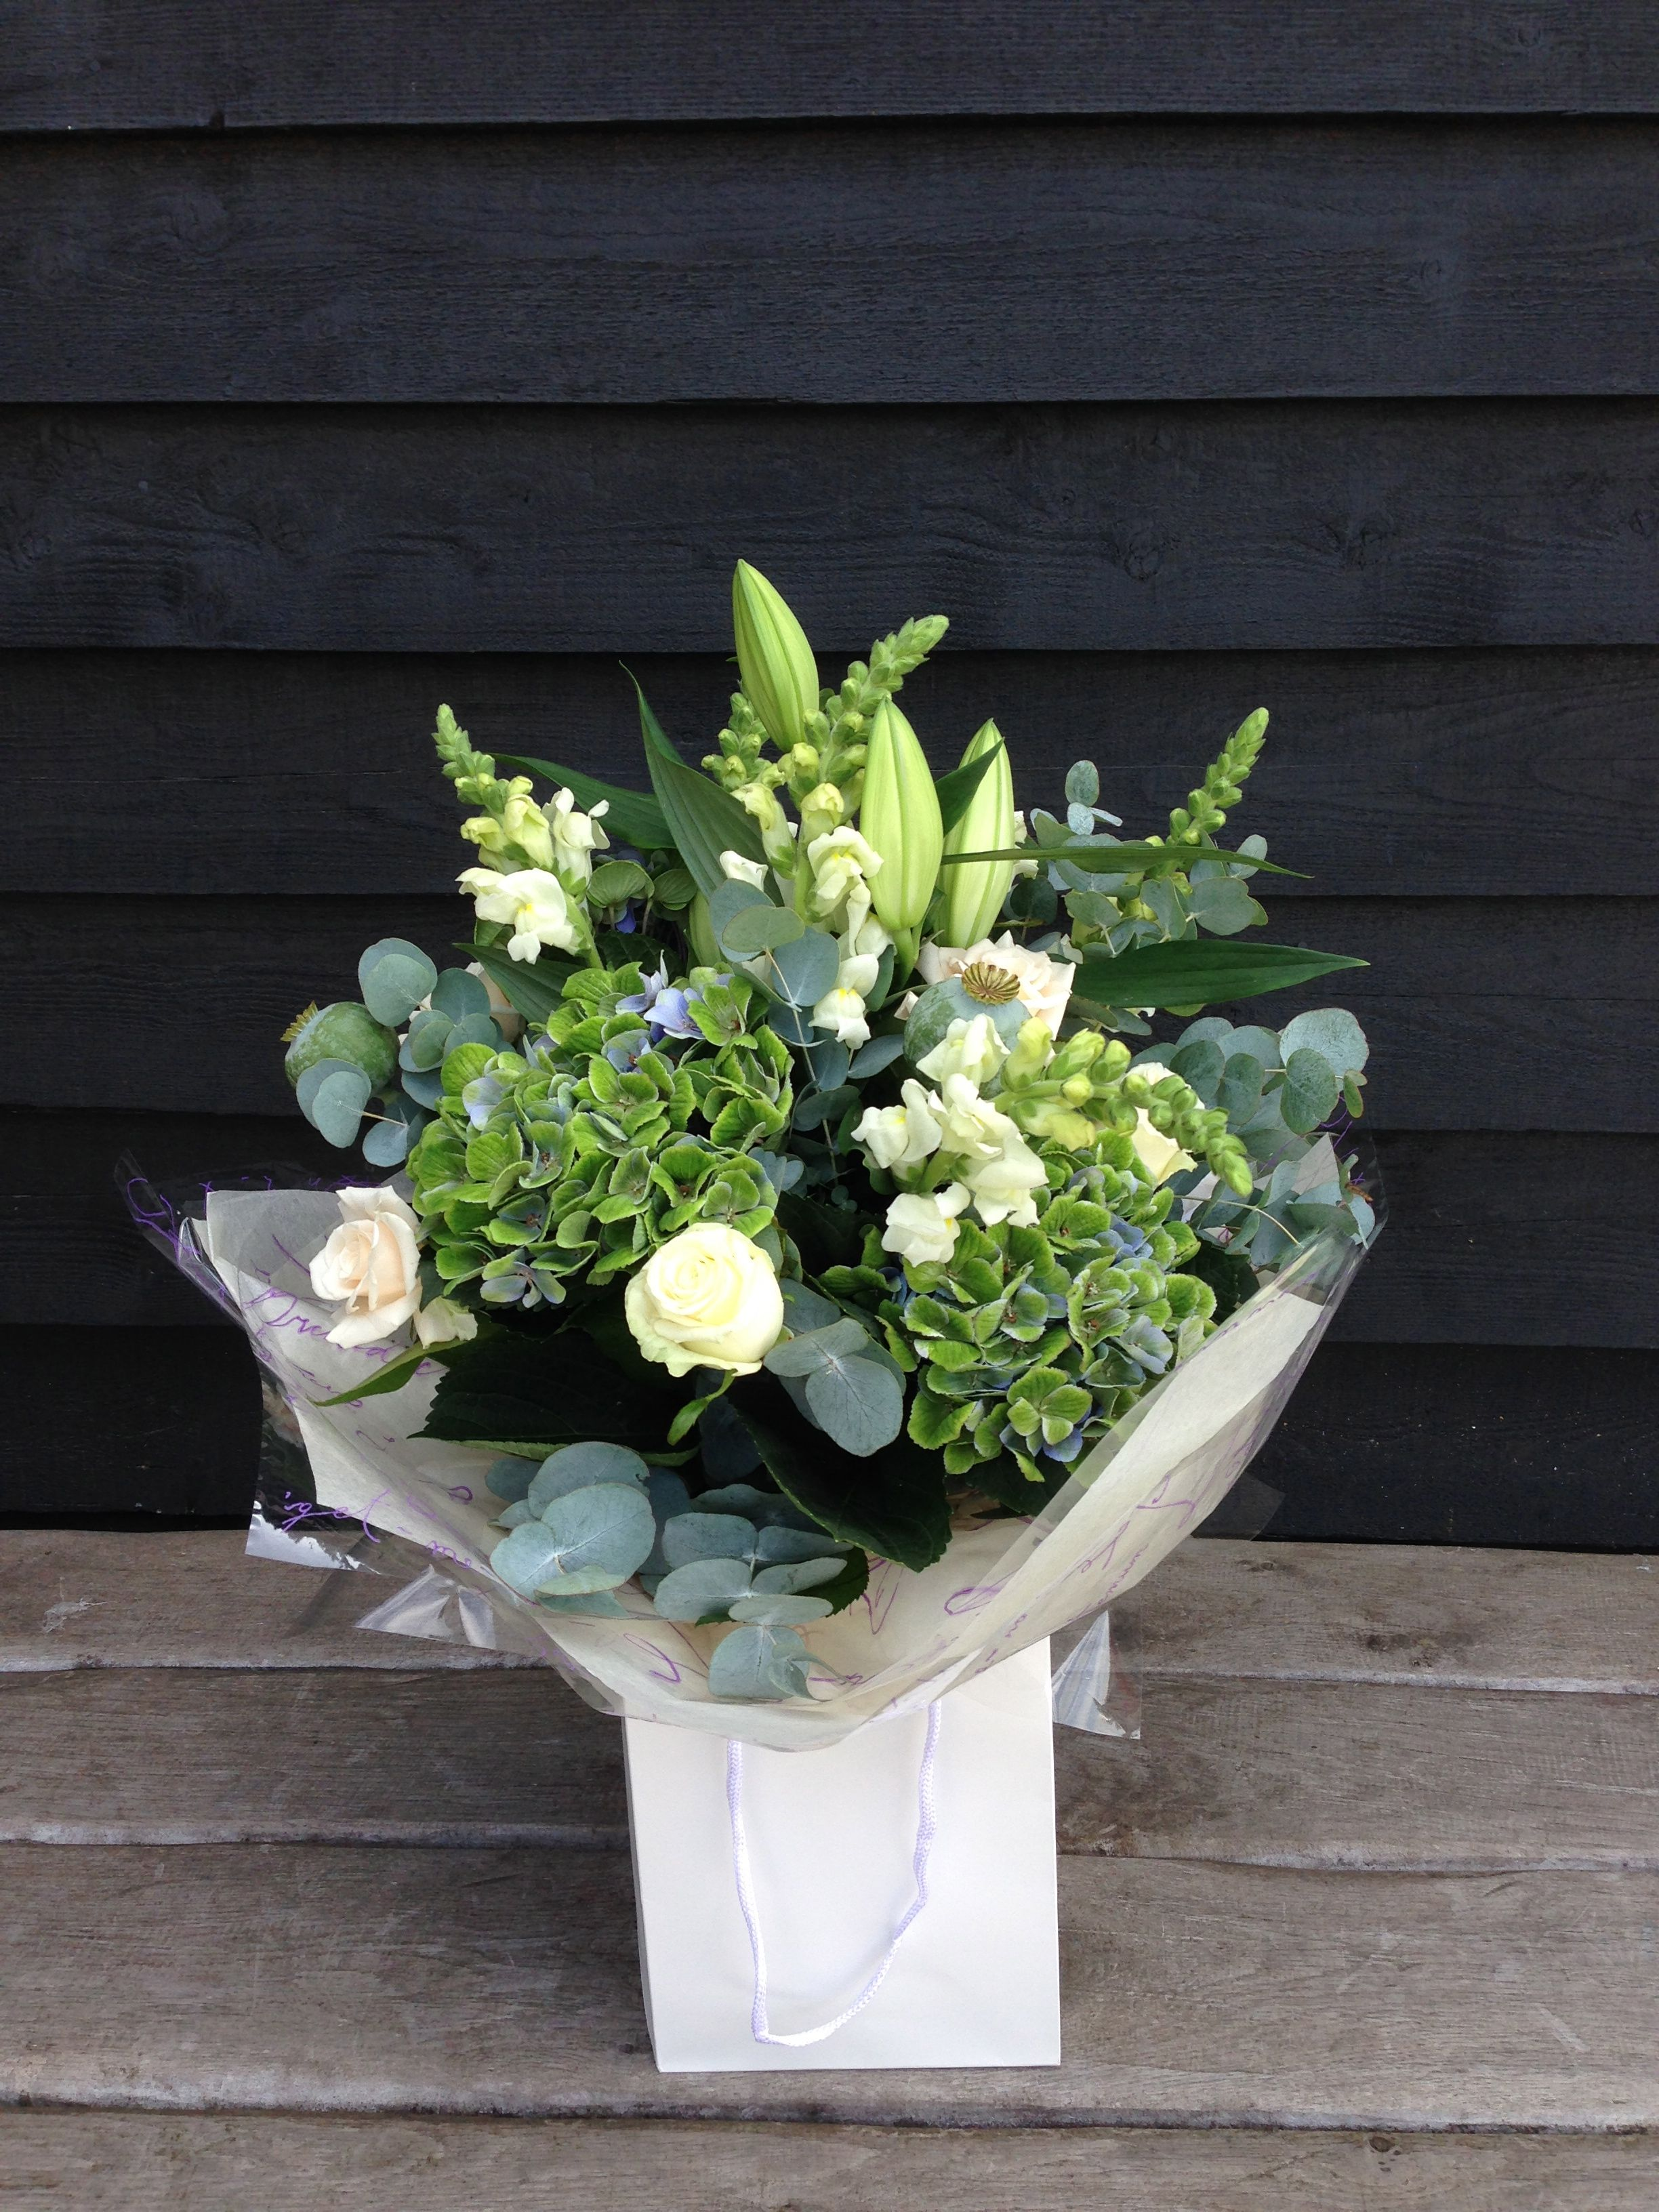 Luxury bouquet for a special someone quirky bird flowers pinterest luxury bouquet for a special someone izmirmasajfo